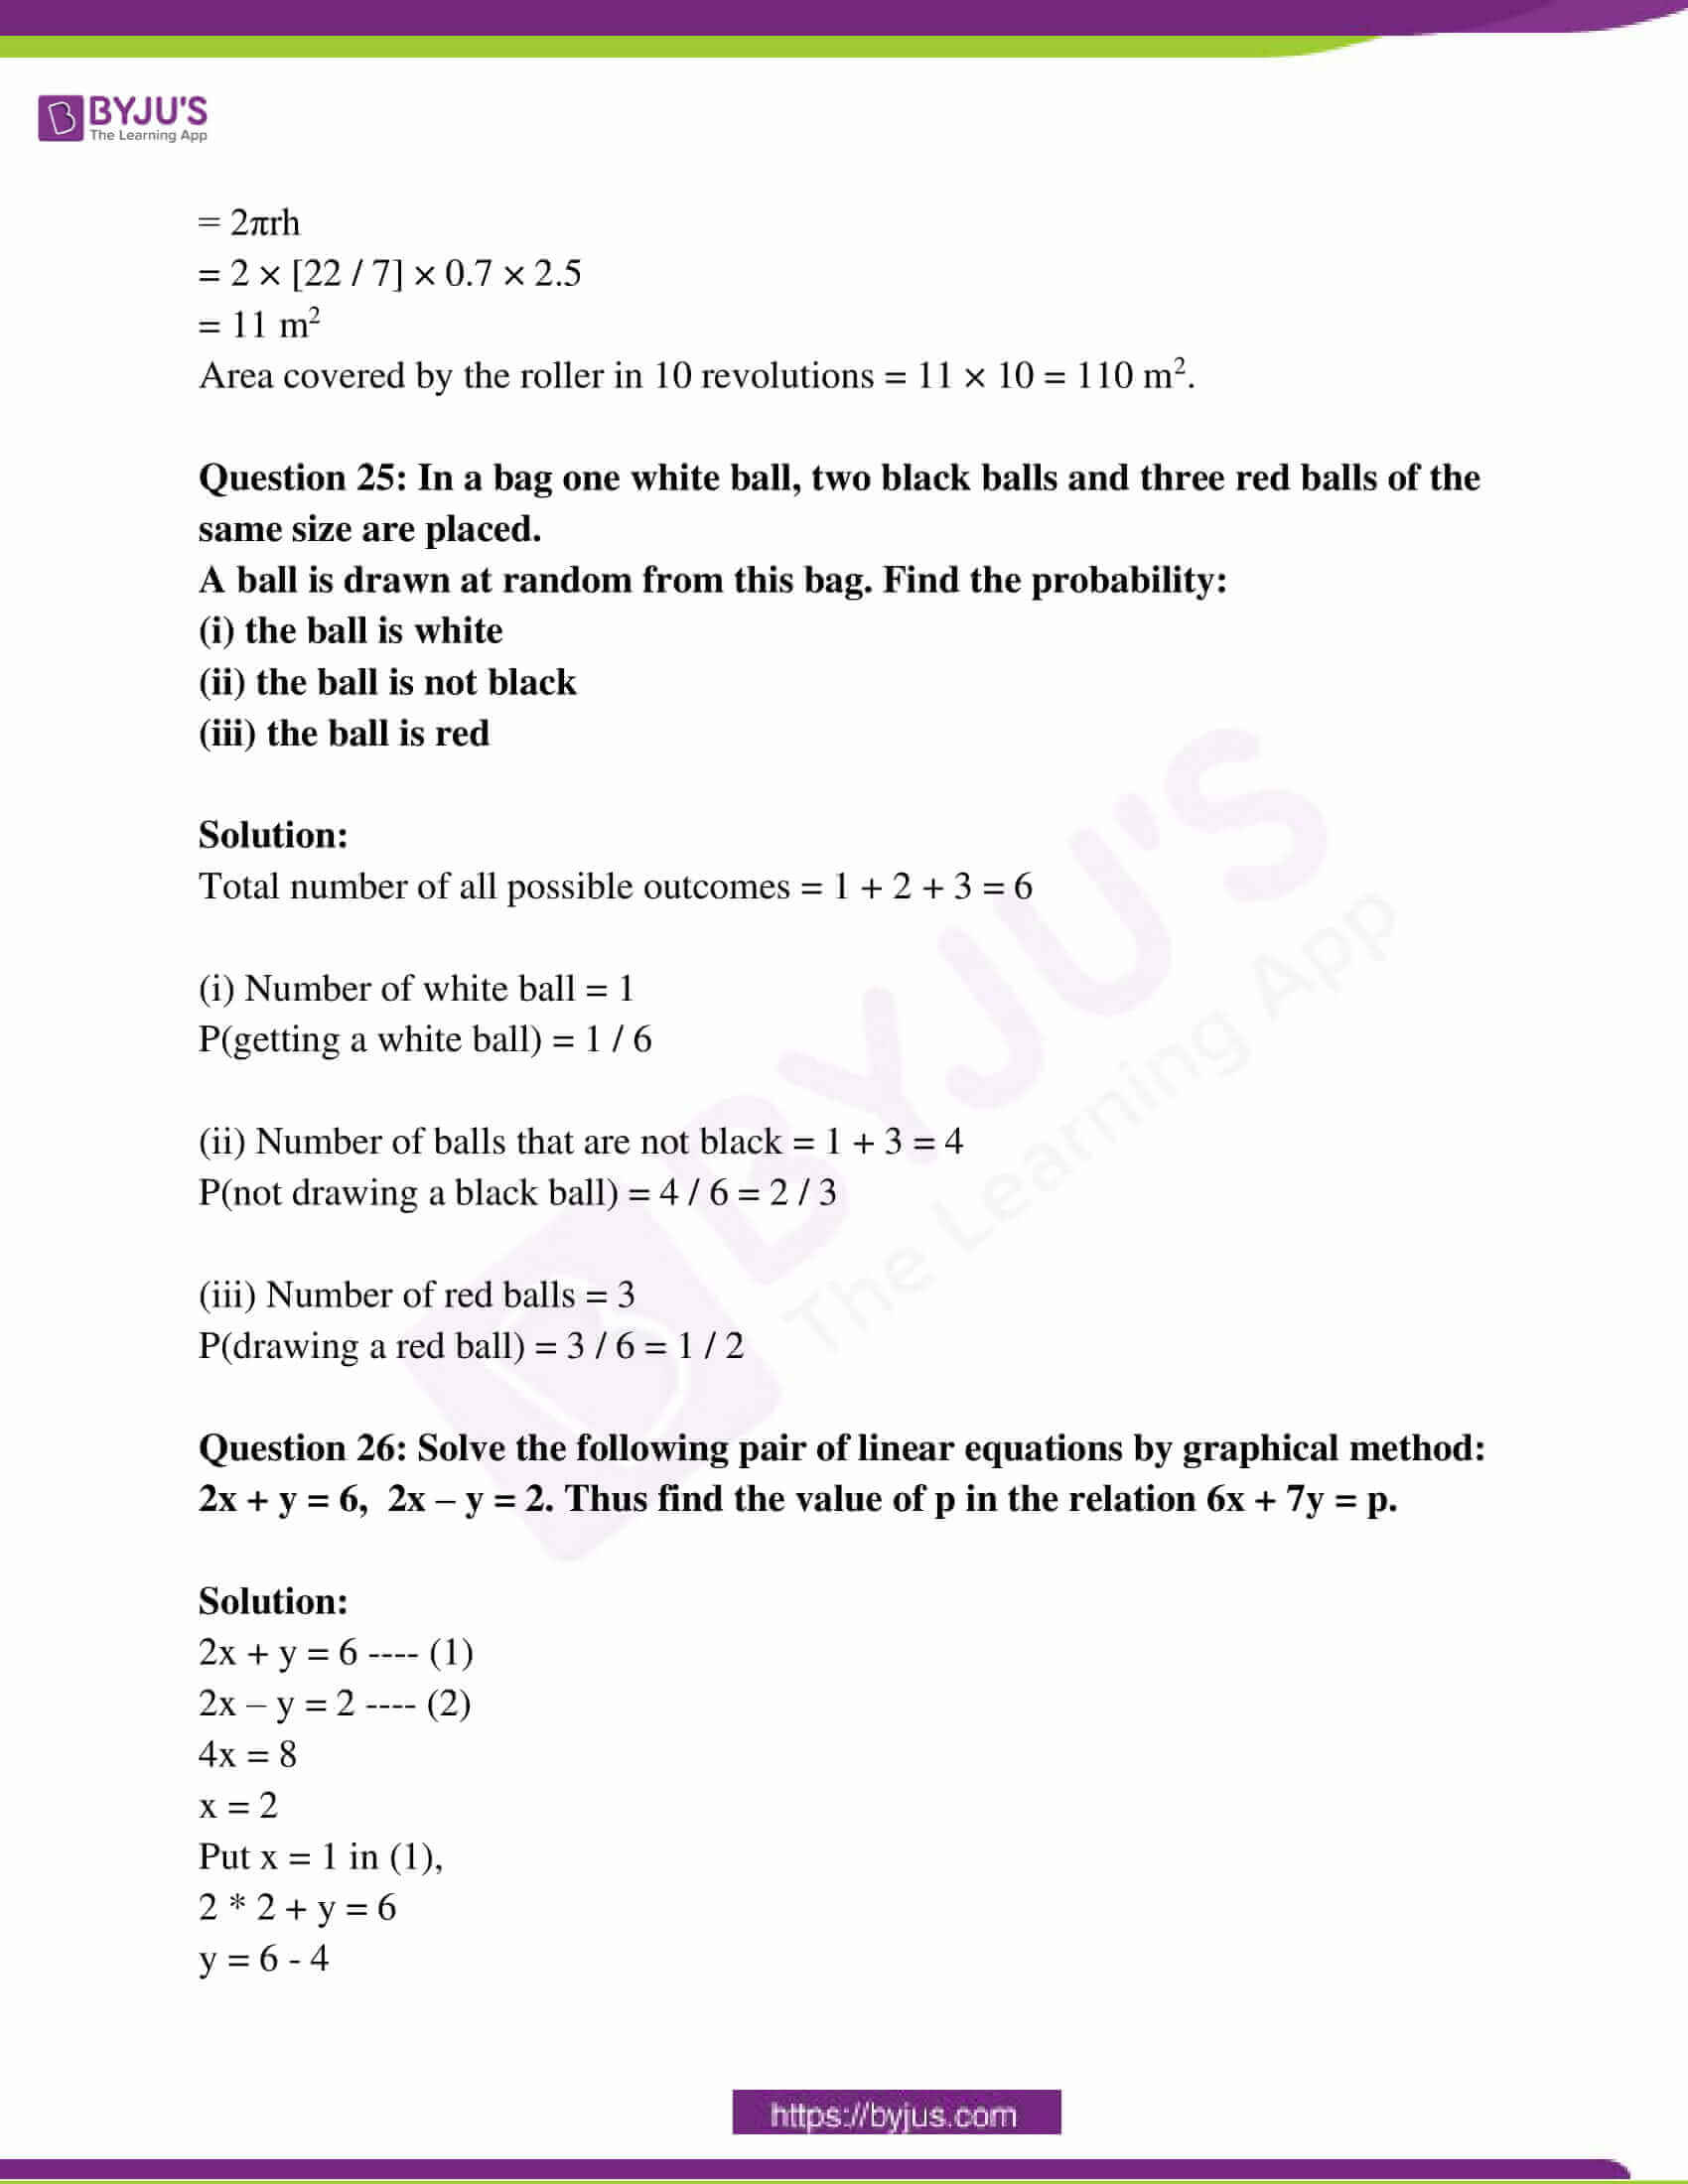 rajasthan board class 10 examination question paper sol march 2018 13